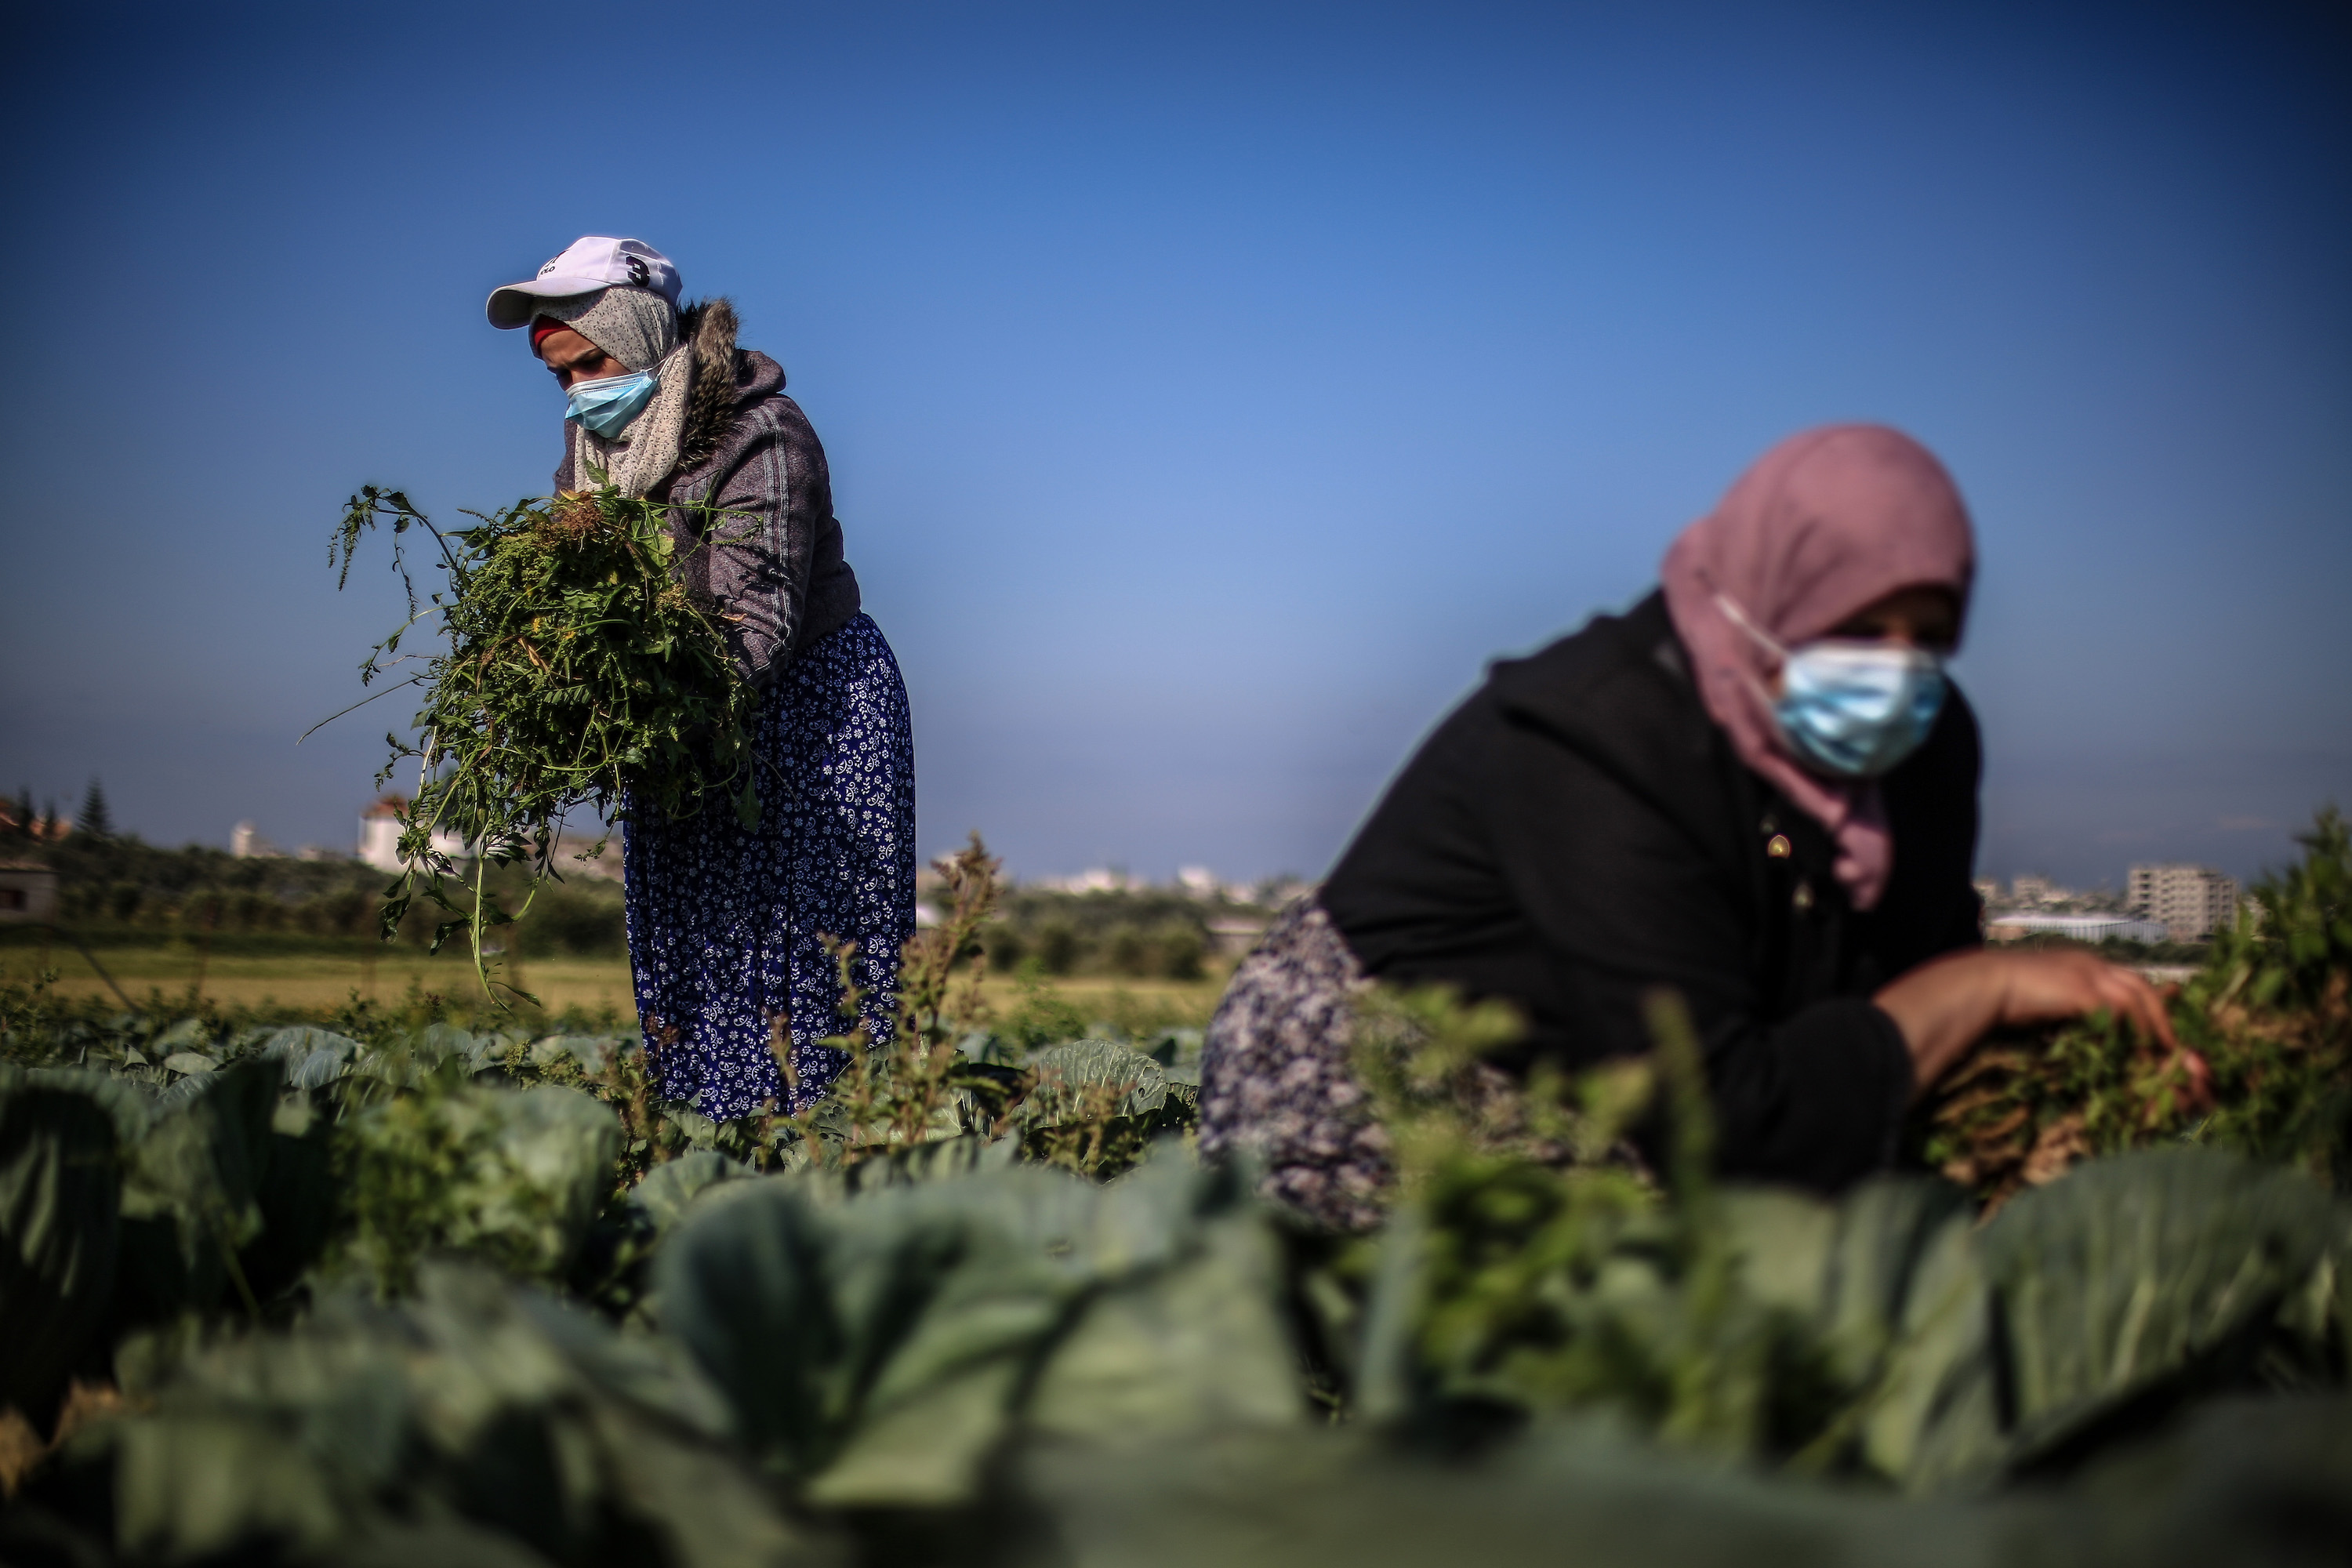 Palestinian farmers in Gaza Strip